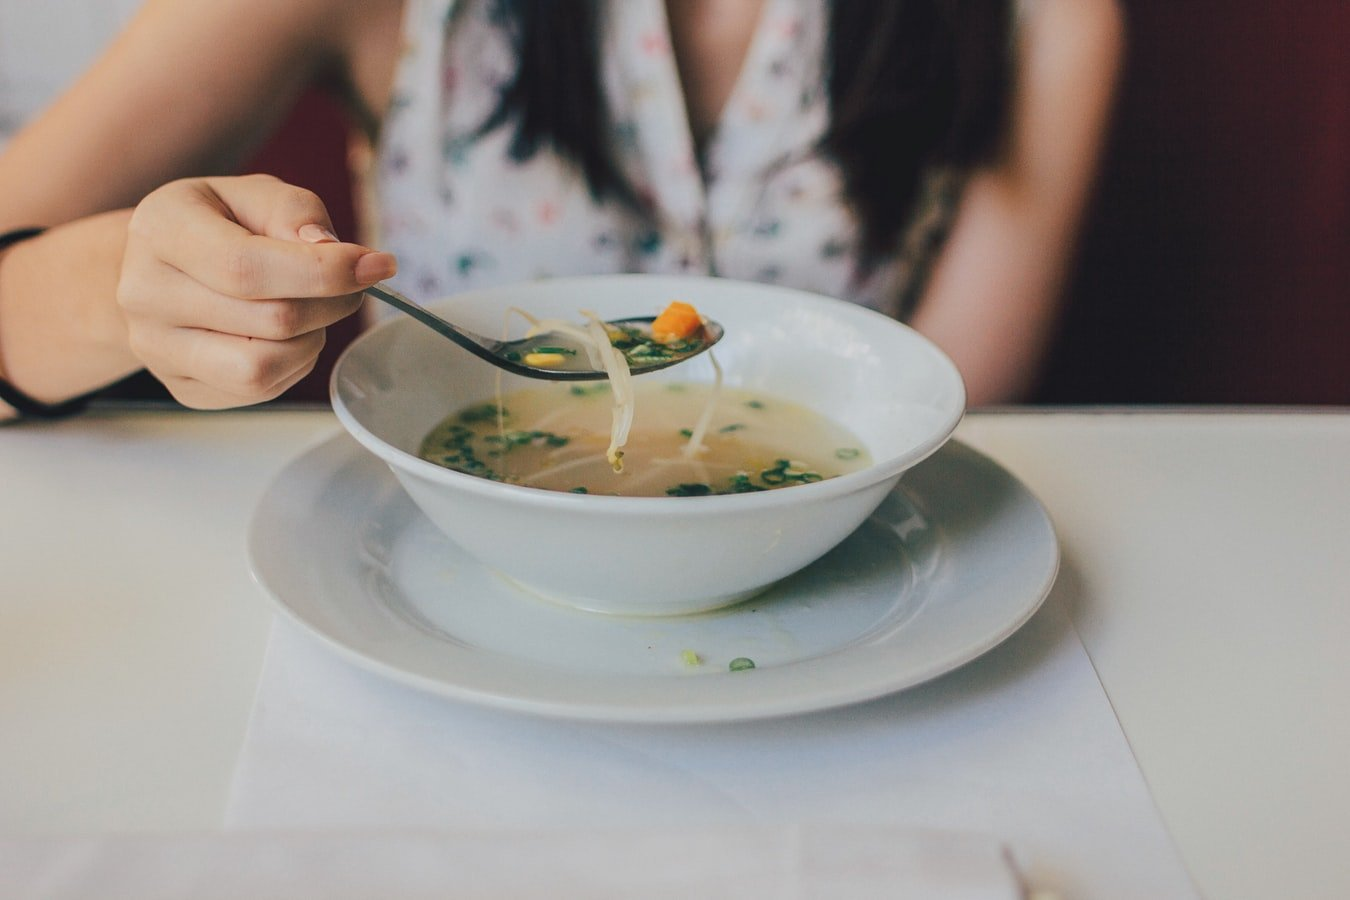 Eating pasta | Source: Unsplash